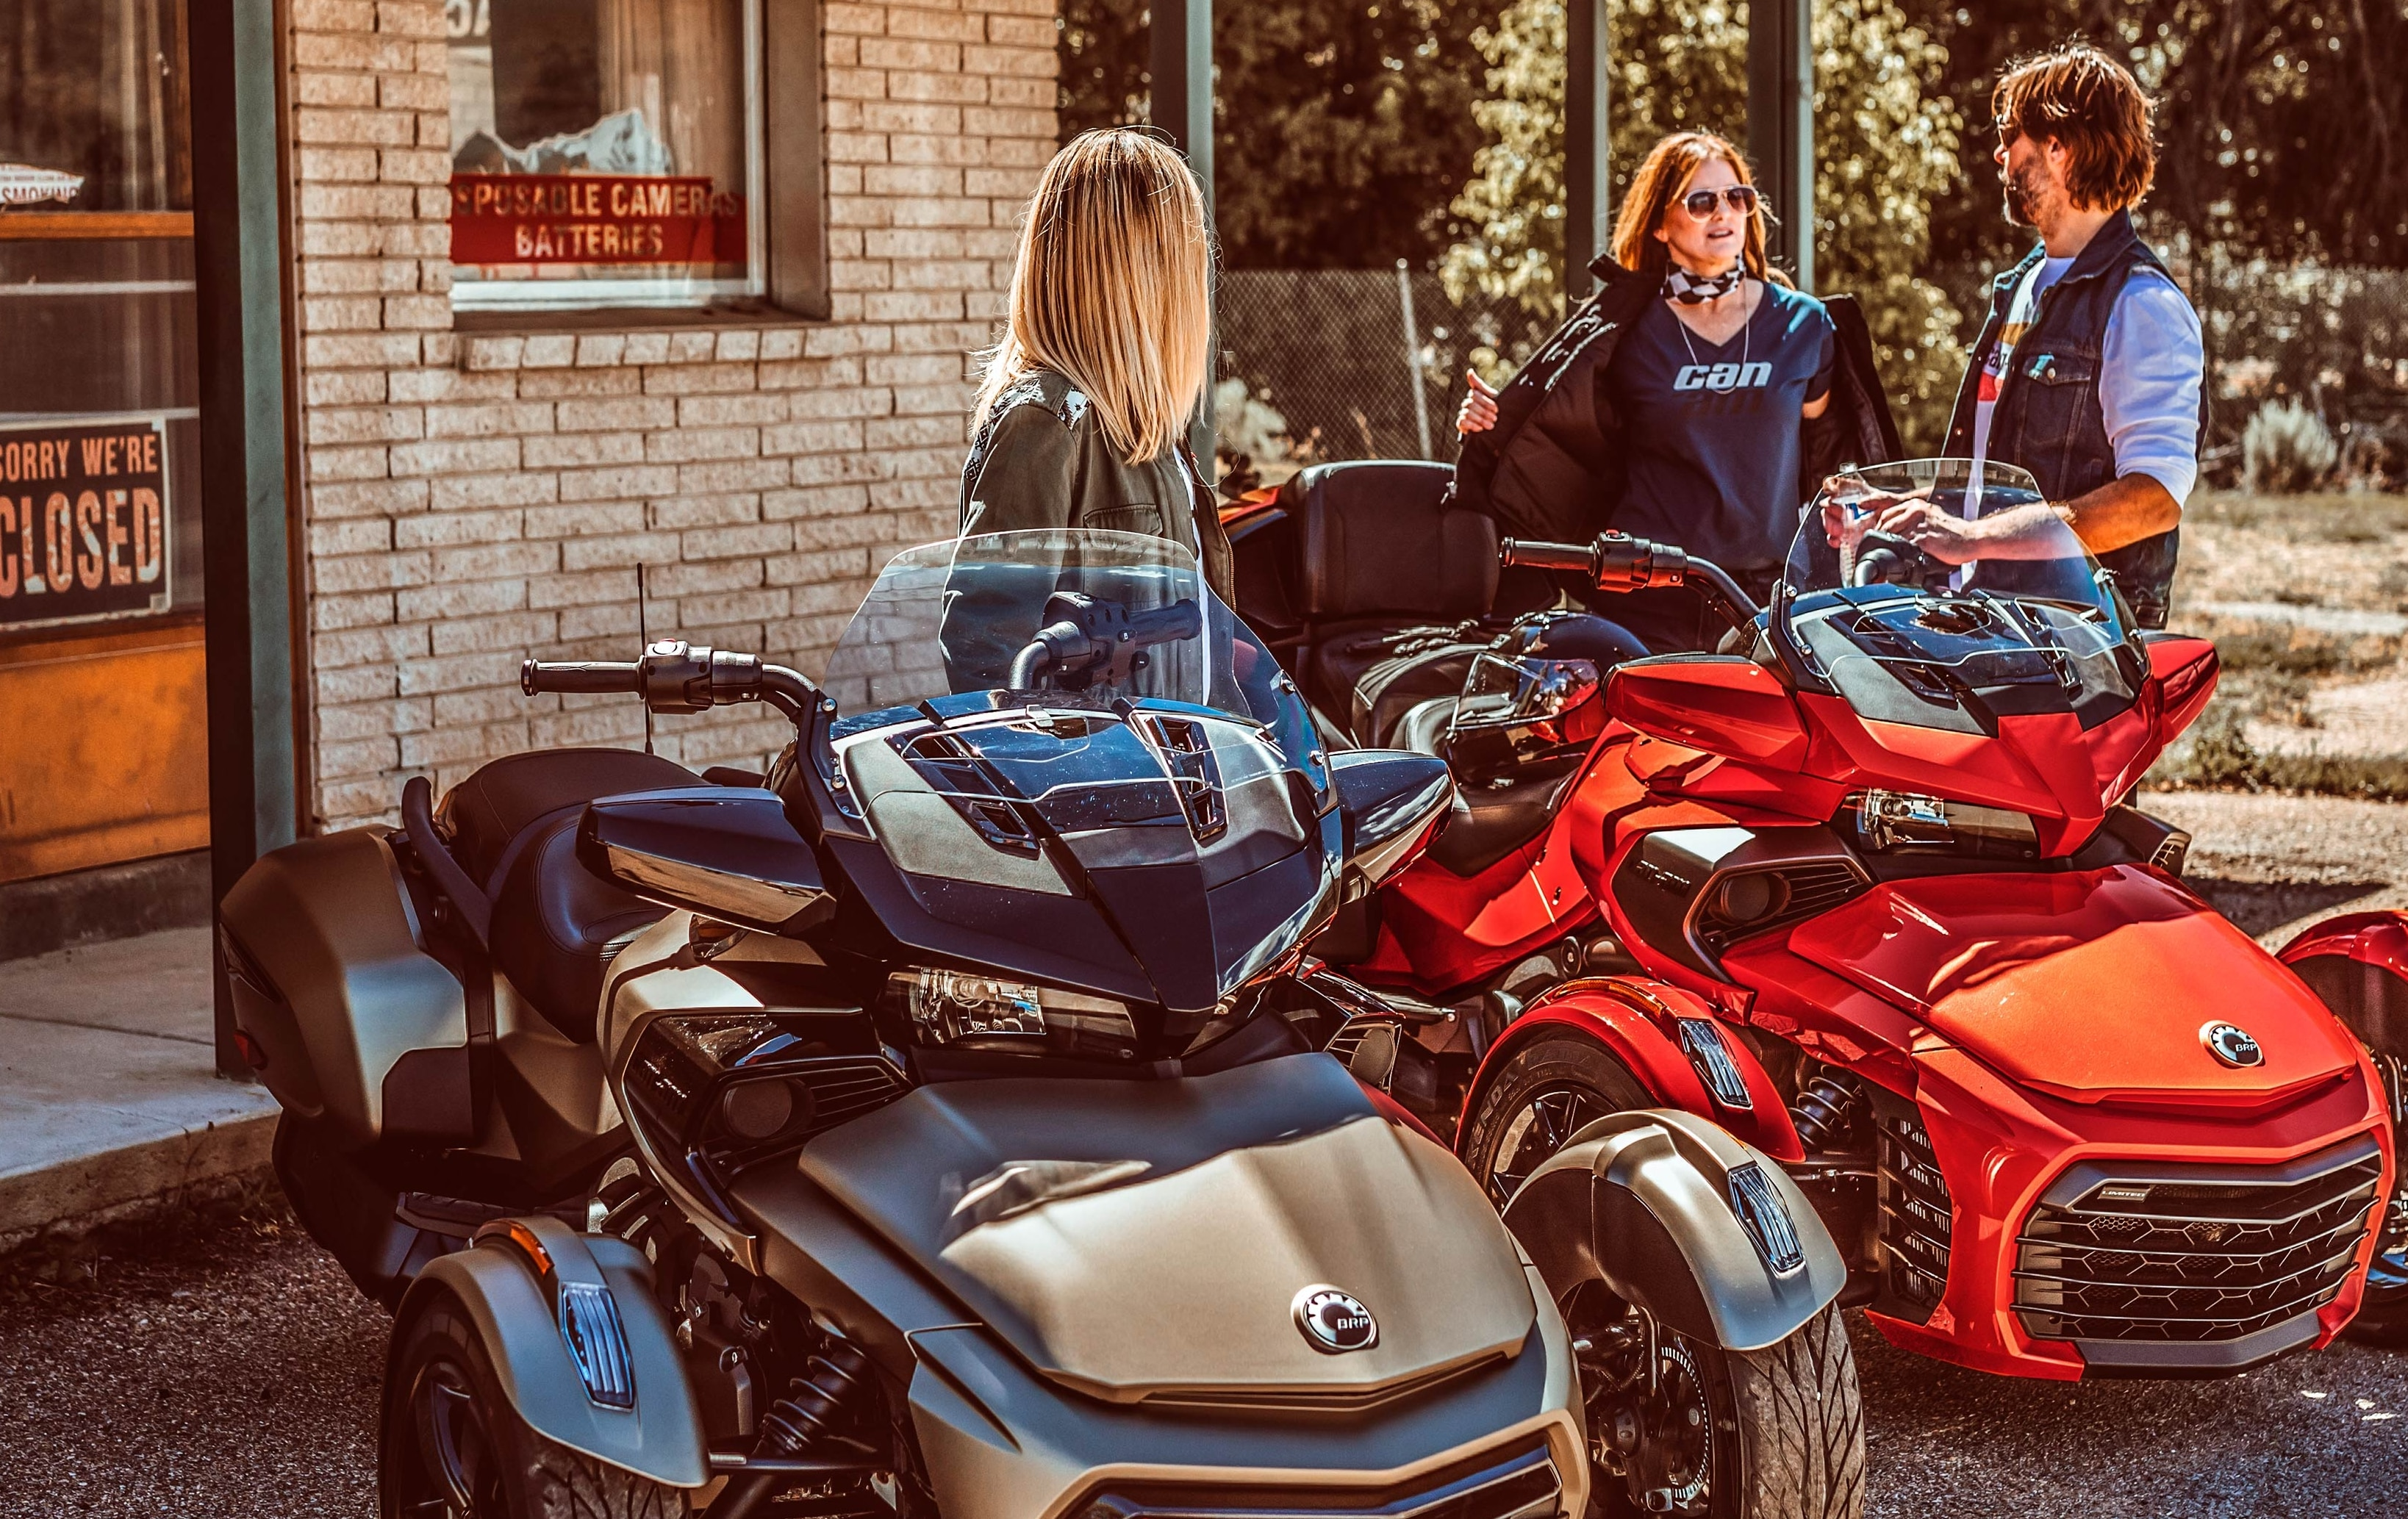 Three friends chatting by two Can-Am Spyder vehicles parked in front of a general store